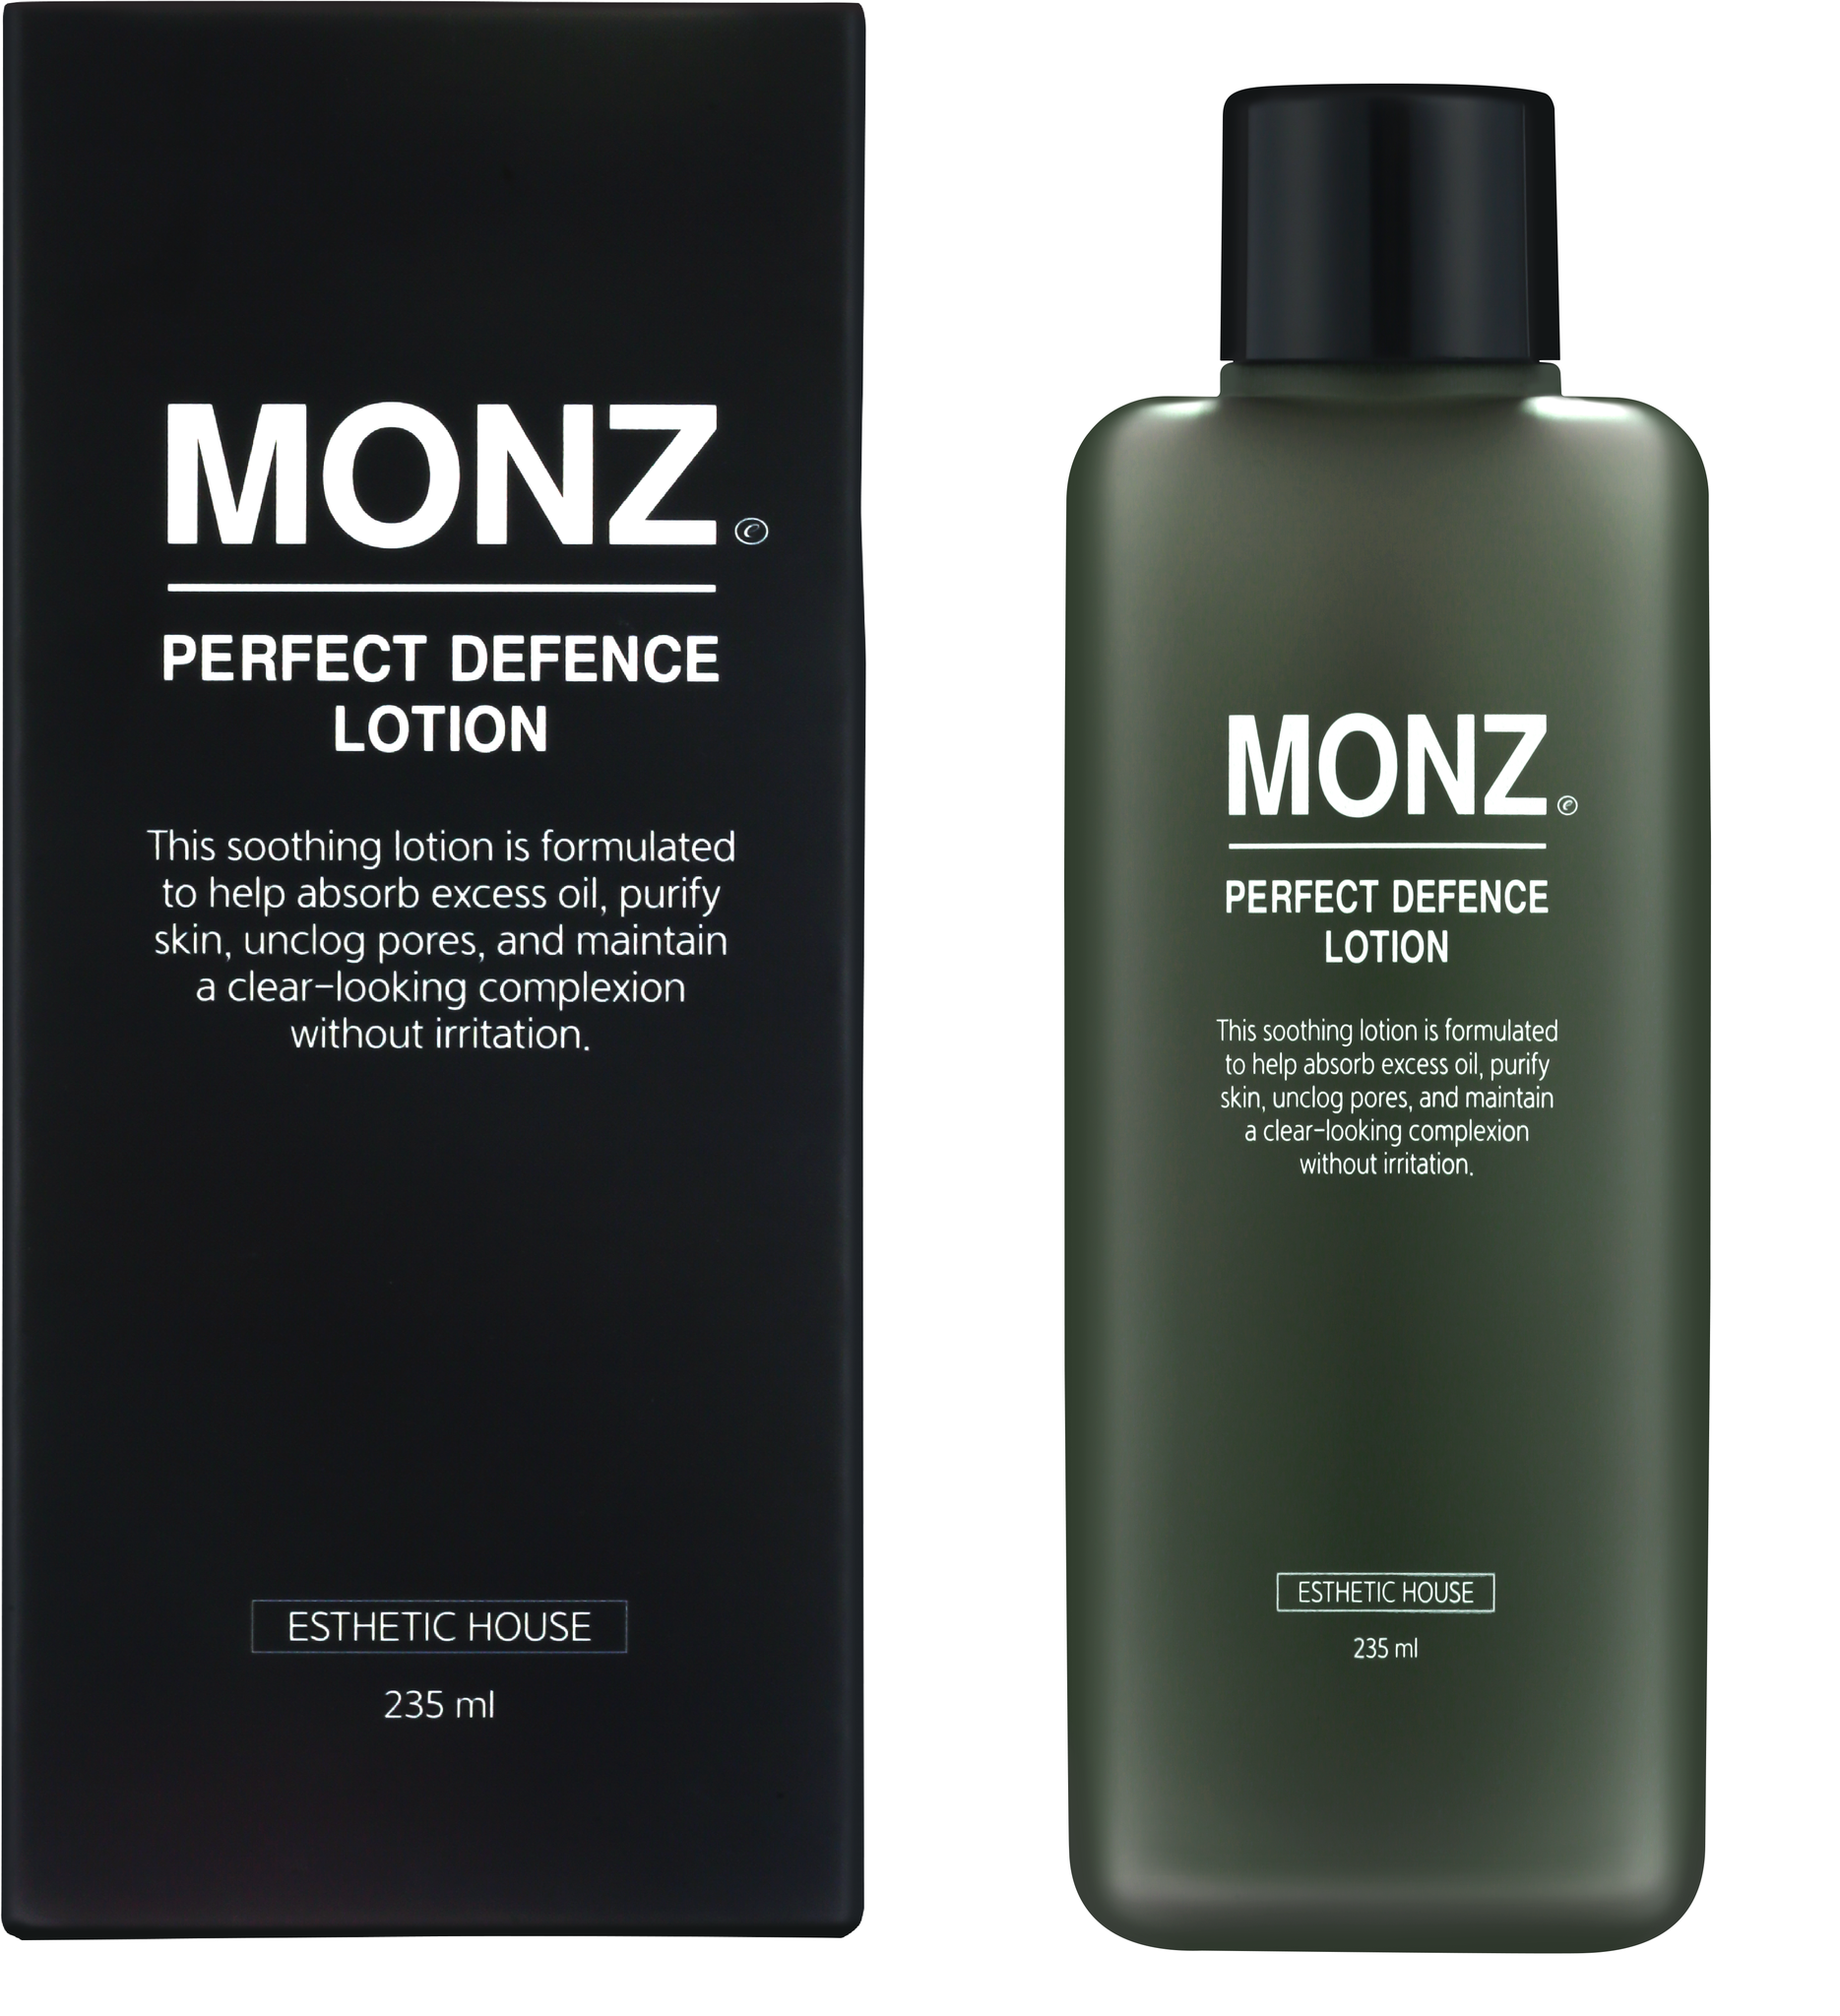 ESTHETIC HOUSE Лосьон для лица МУЖСКОЙ MONZ PERFECT DEFENCE LOTION, 235 мл. uploads_photos__ESTHETIC_HOUSE__011510-_ESTHETIC_HOUSE__Лосьон_для_лица_МУЖСКОЙ_MONZ_PERFECT_DEF.png